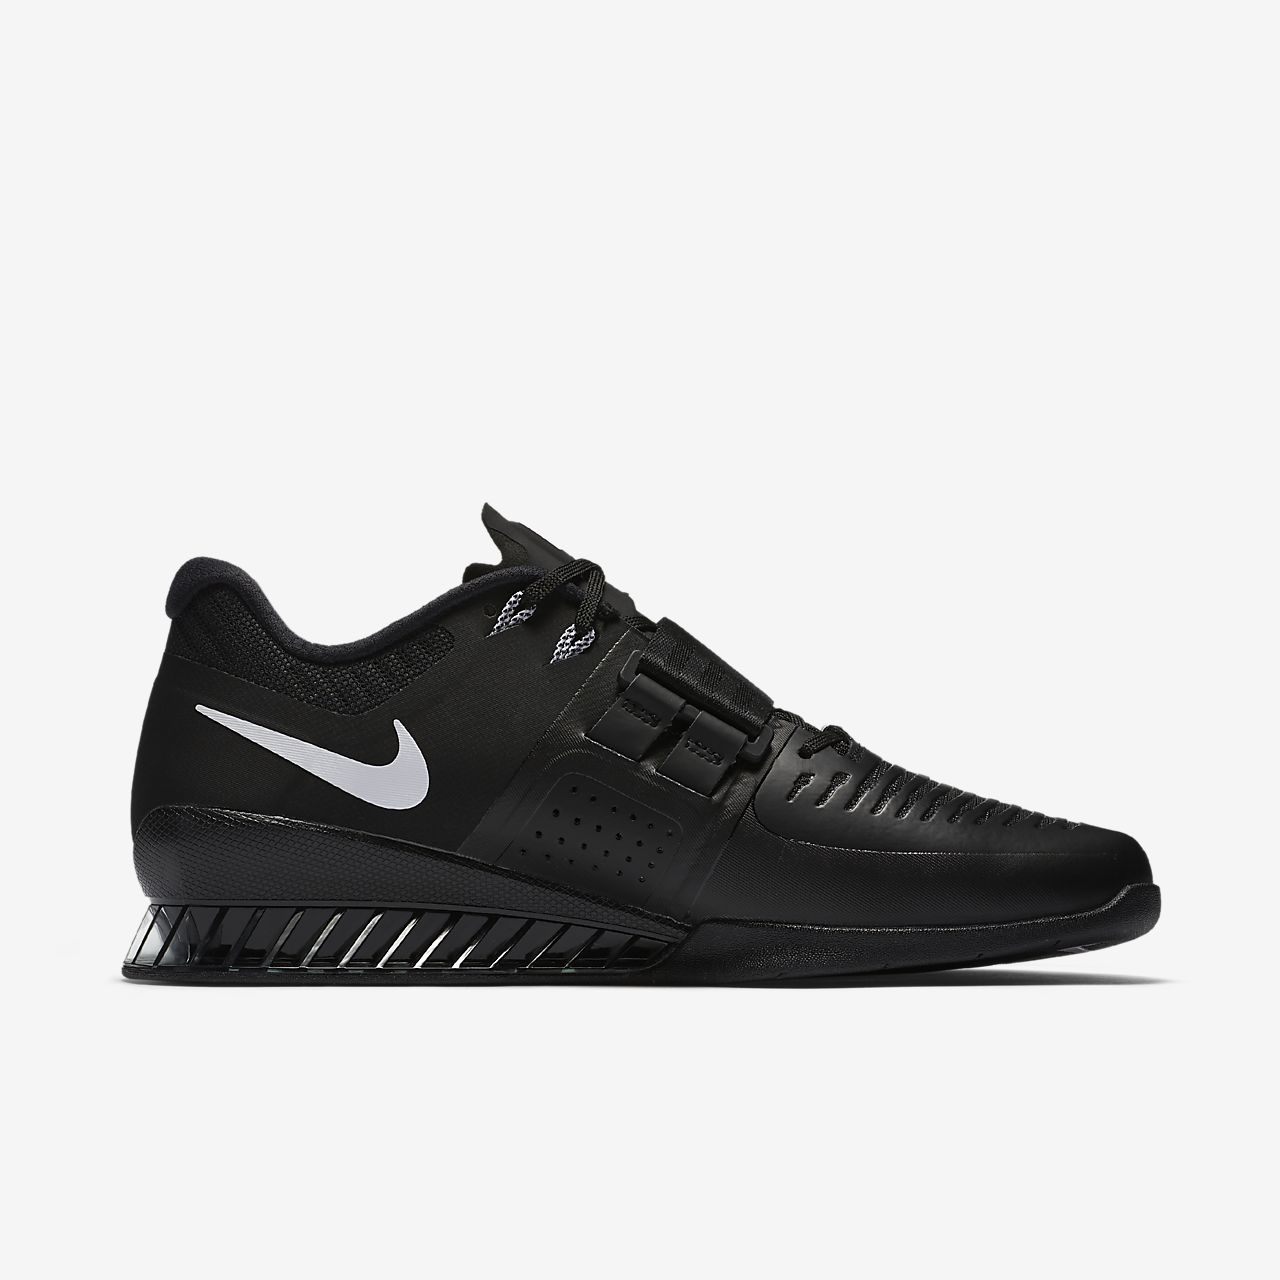 Low Resolution Nike Romaleos 3 Weightlifting Shoe